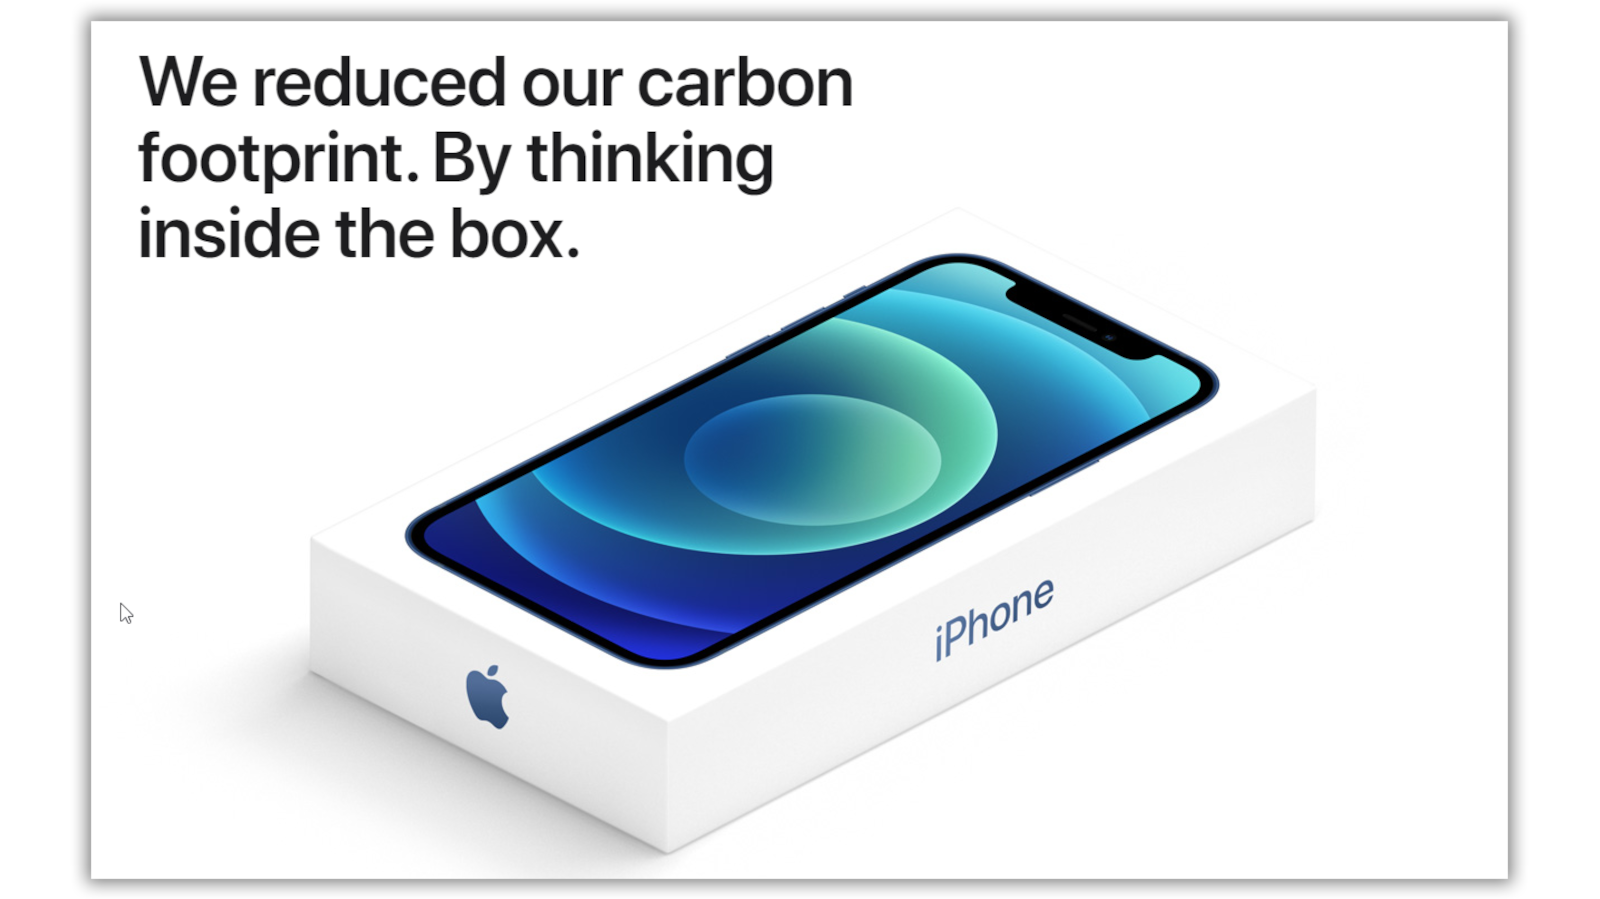 iphone box featured